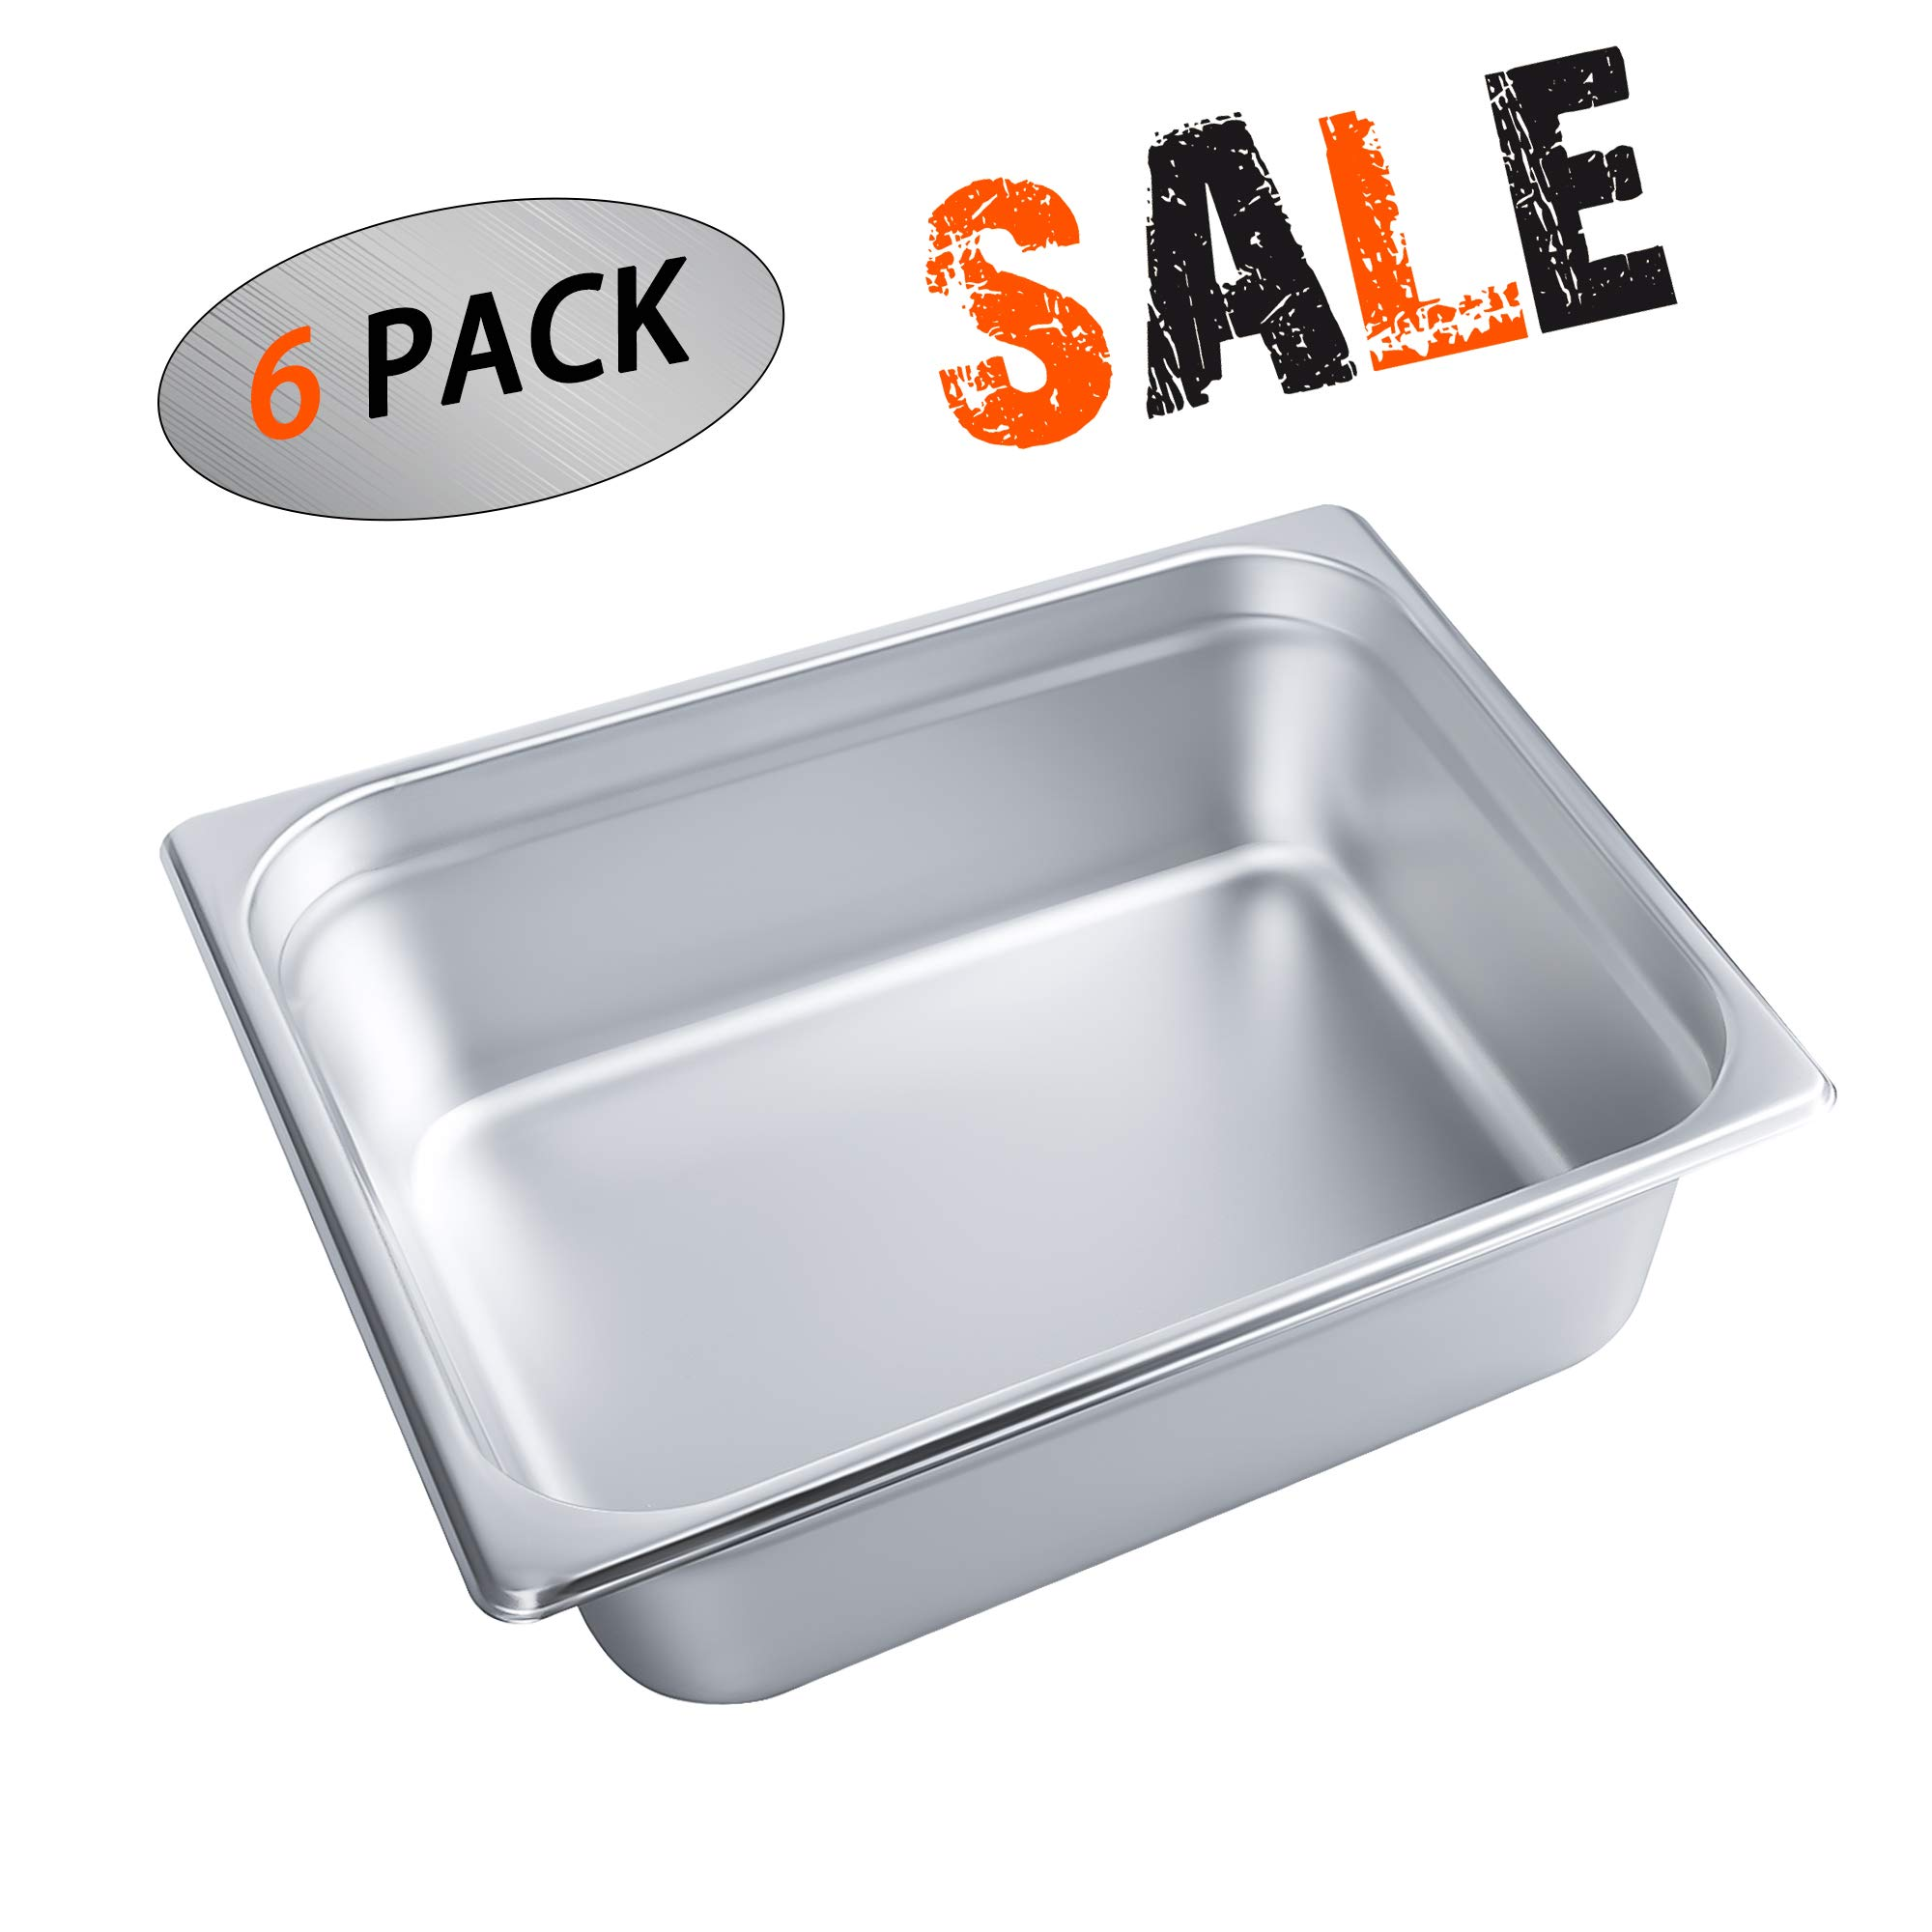 4'' Deep Steam Table Pan Half Size,Kitma 6 Quart Stainless Steel Anti-Jam Standard Weight Hotel GN Food Pans - NSF (12.8''L x 10.43''W) - 6 Pack